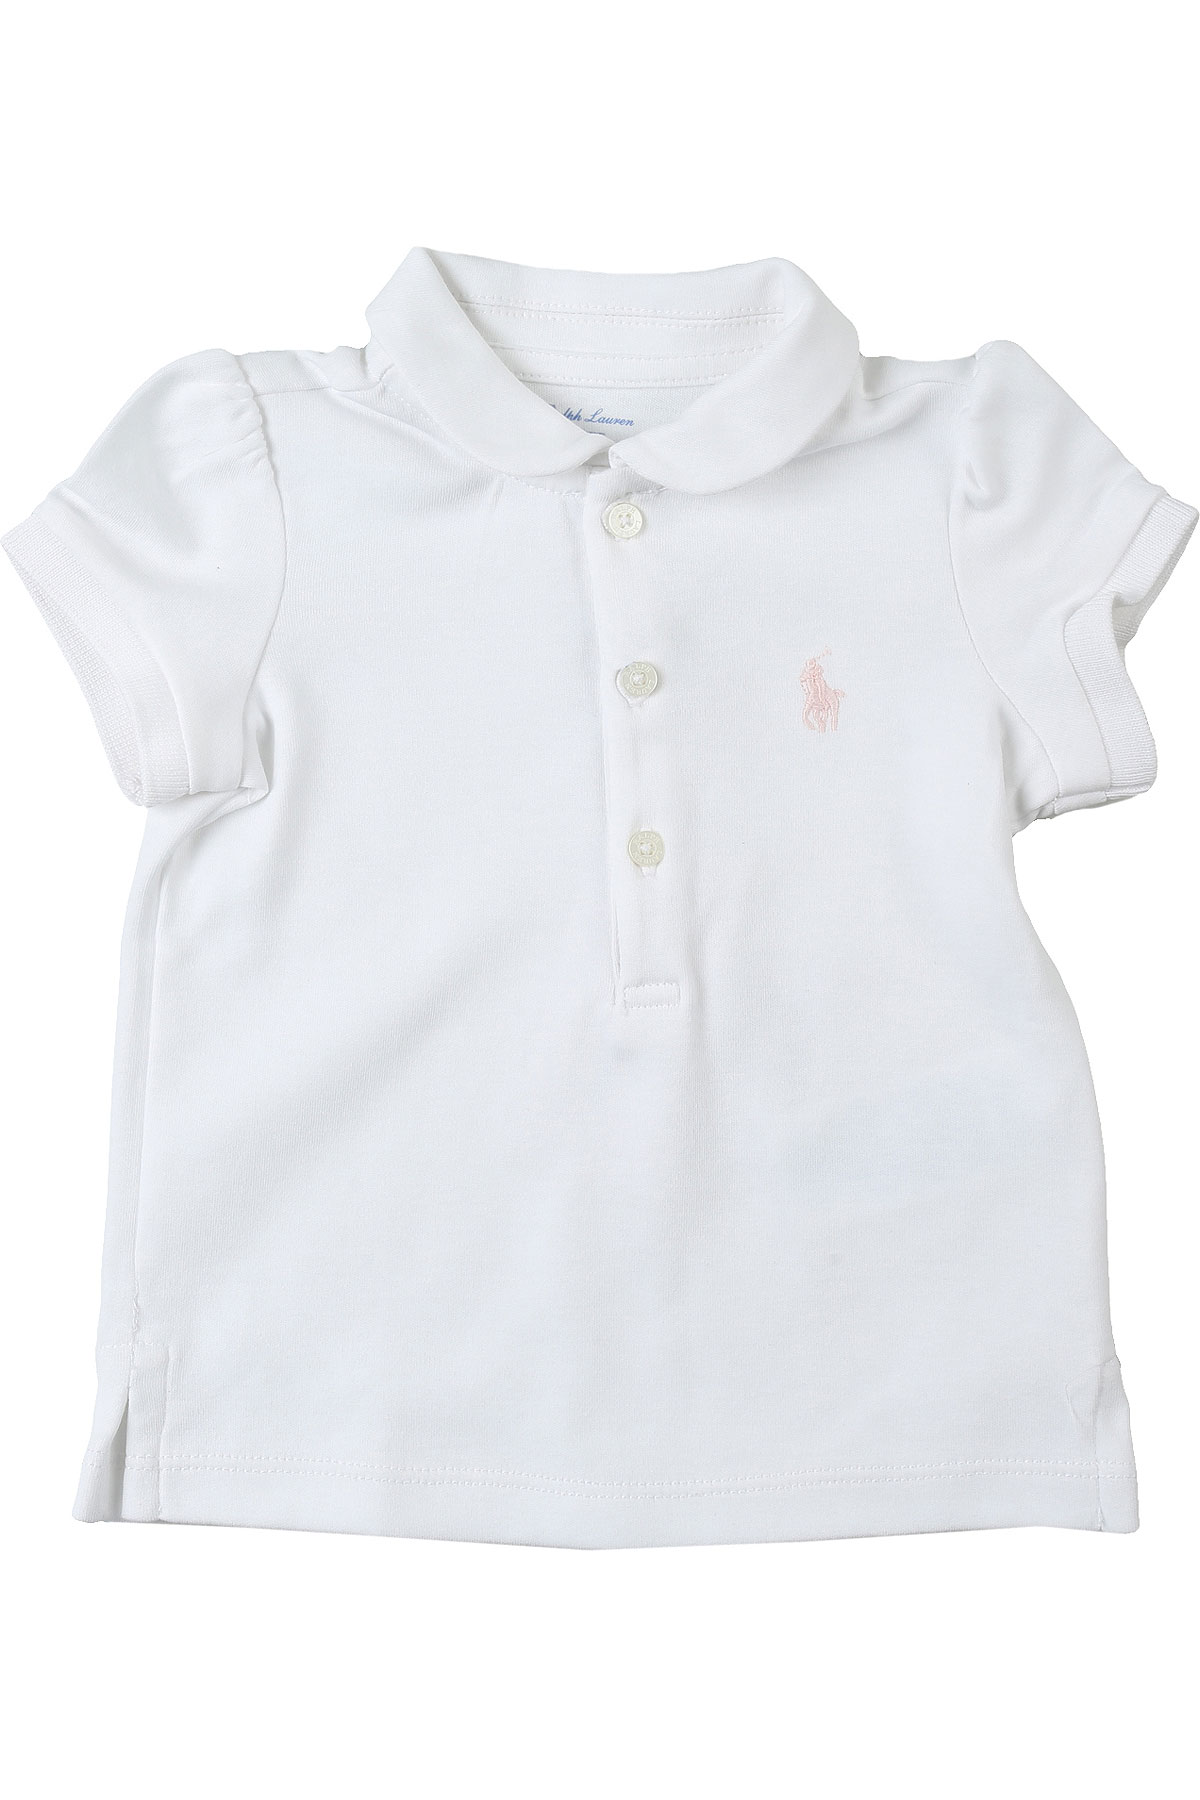 Ralph Lauren Baby Polo Shirt for Girls On Sale, White, Cotton, 2019, 12M 2Y 6M 9M